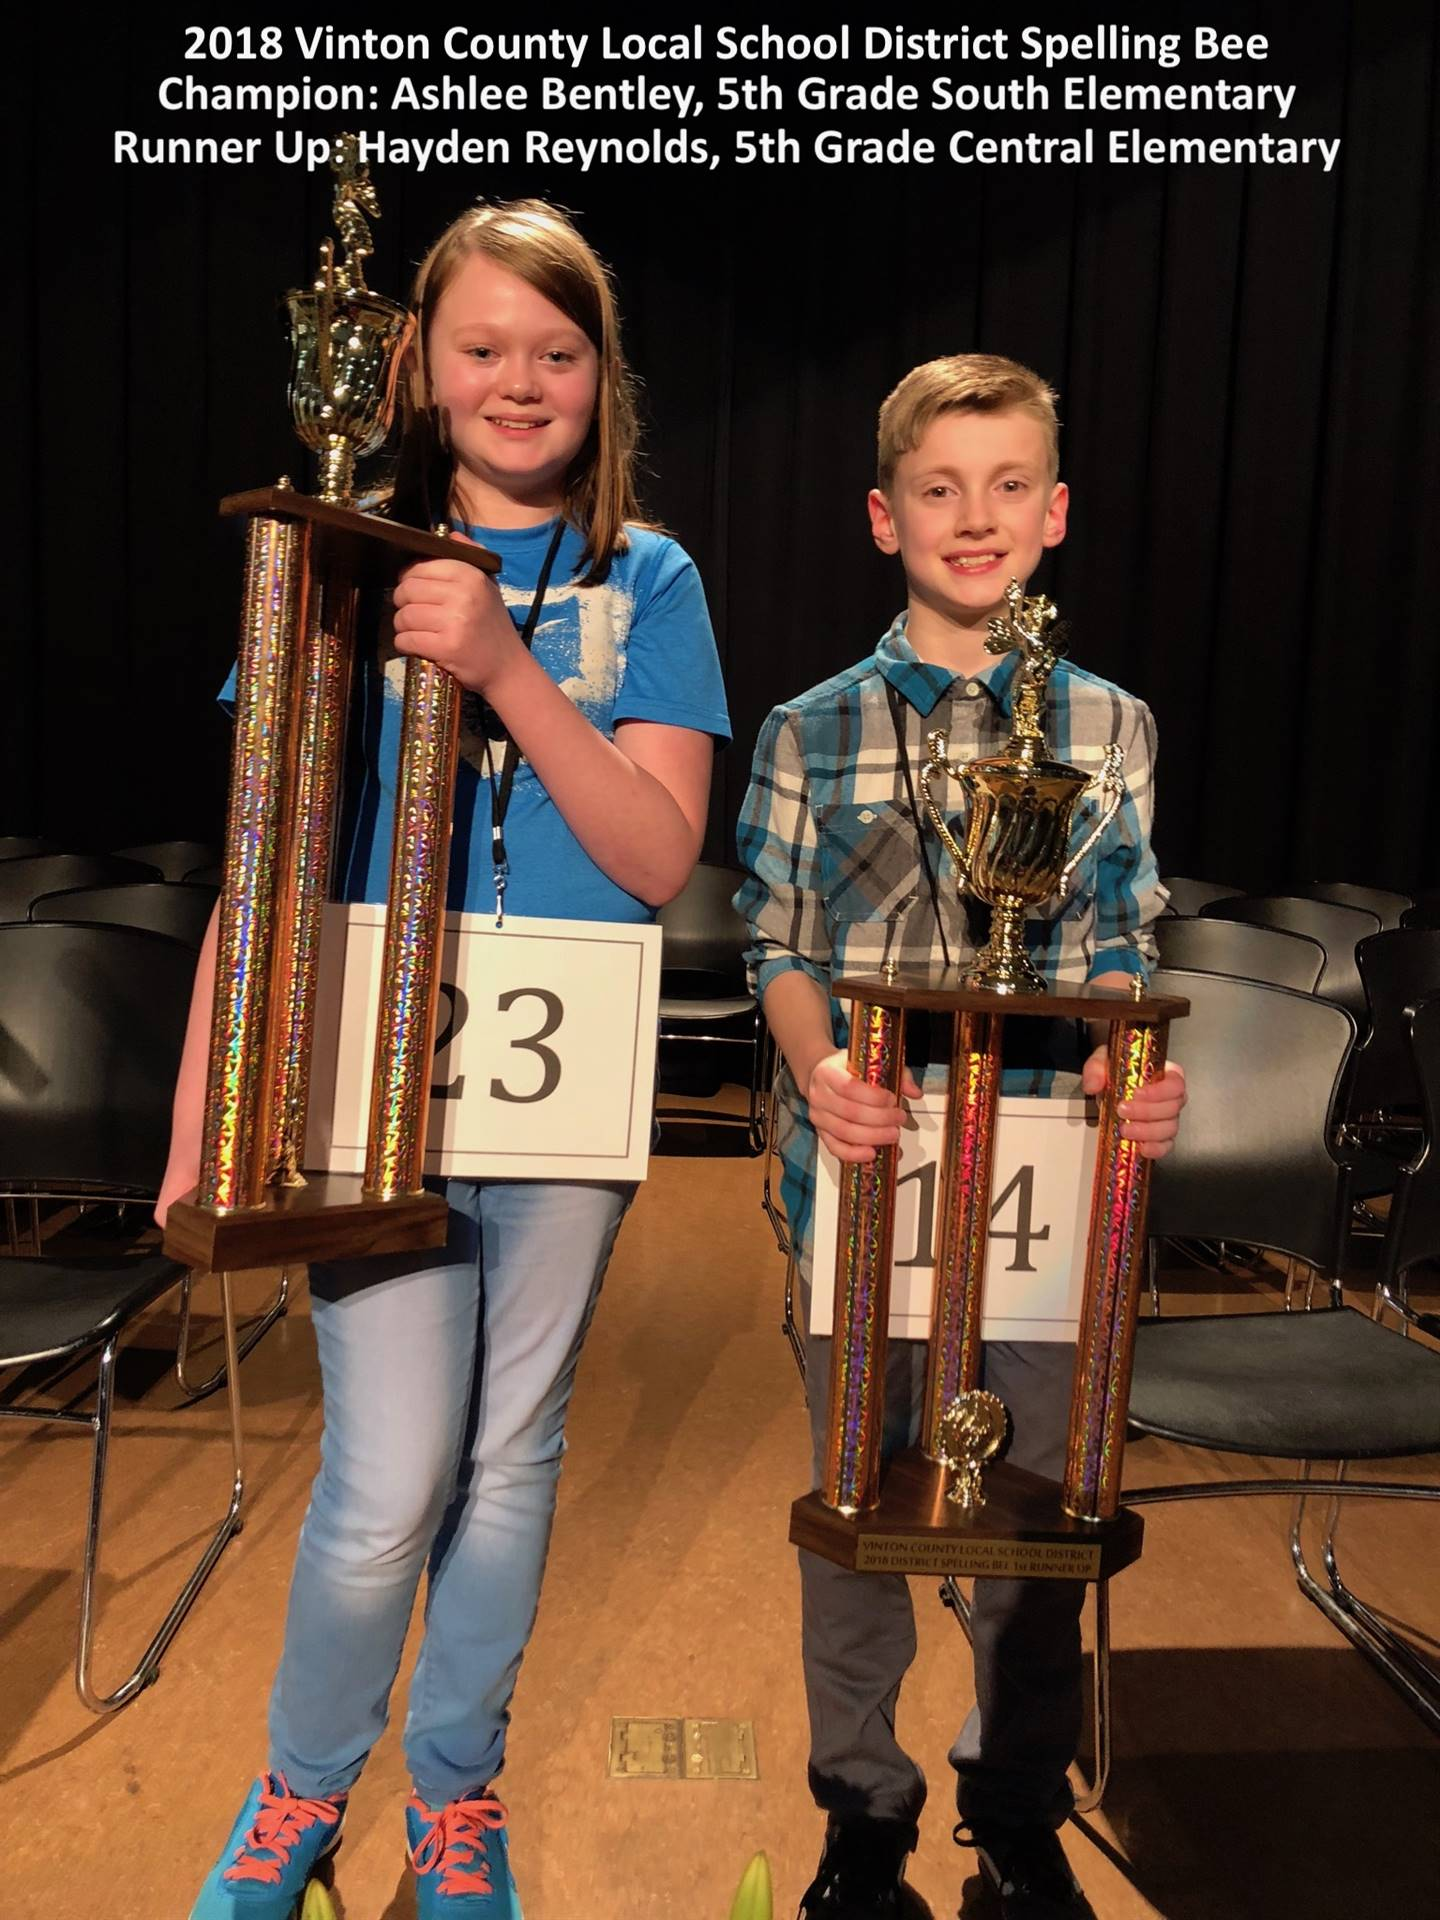 2018 District Spelling Bee Champion, Ashlee Bentley and Runner-Up, Hayden Reynolds